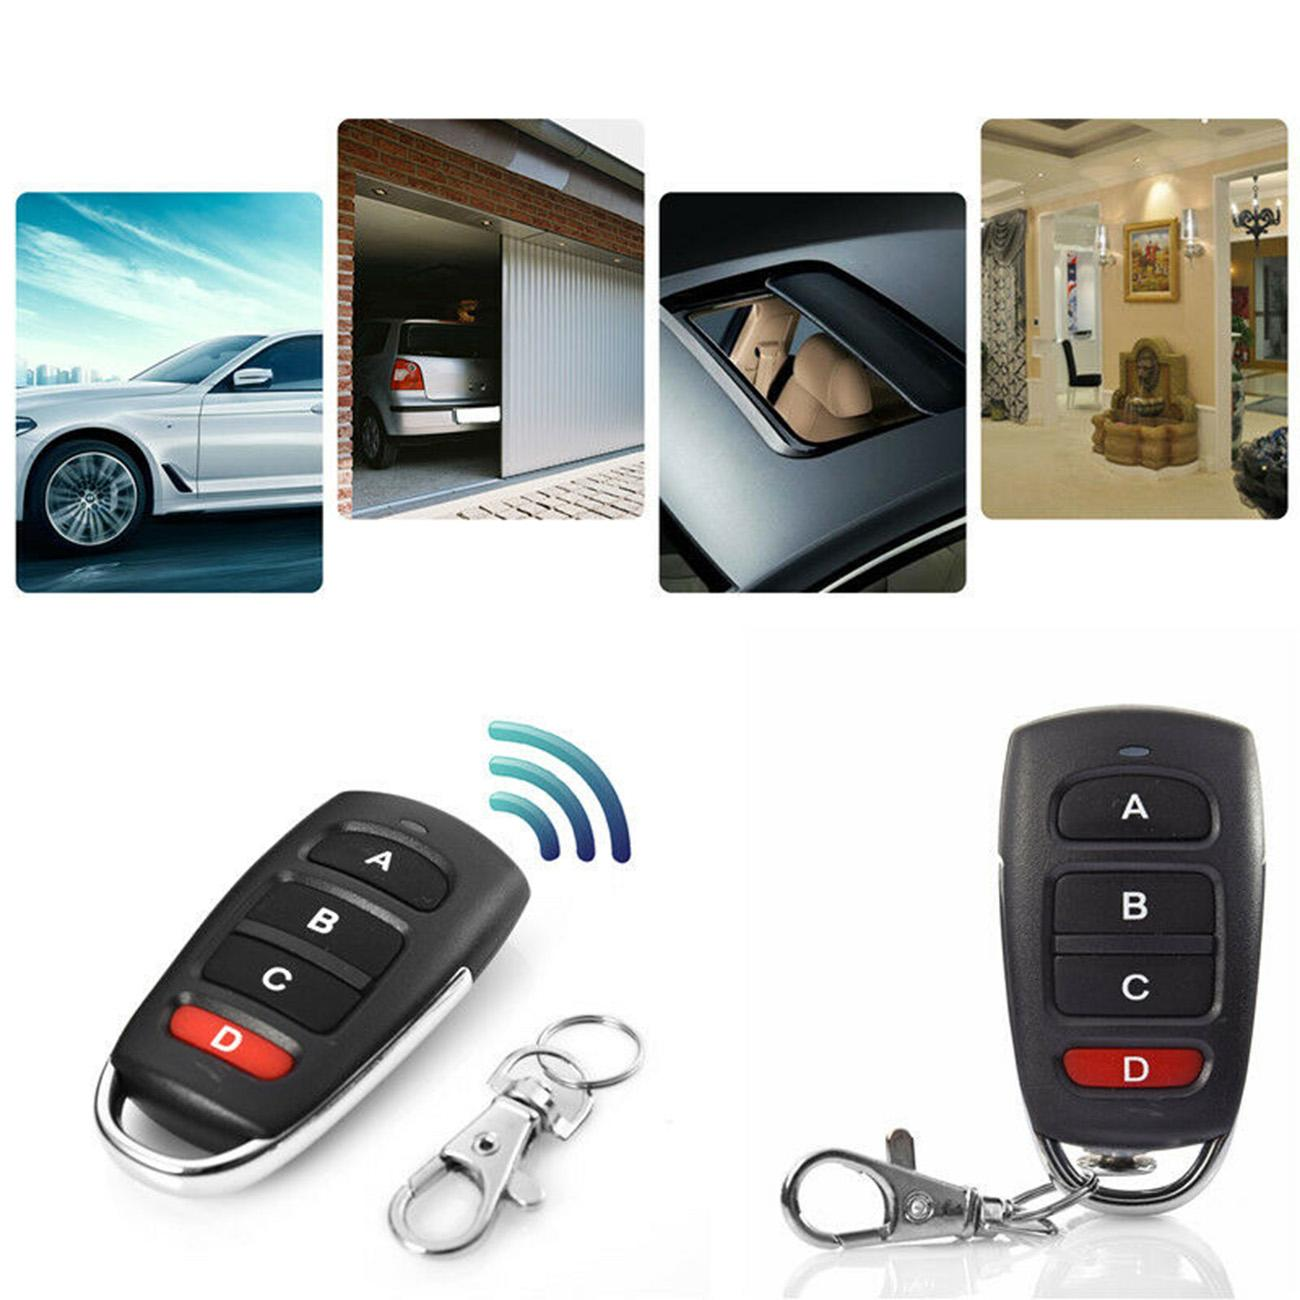 Universal 433mhz Wireless Electric Gate Garage Door Remote Control Key Fob Hand Transmitter Remotes Controller 4 Buttons